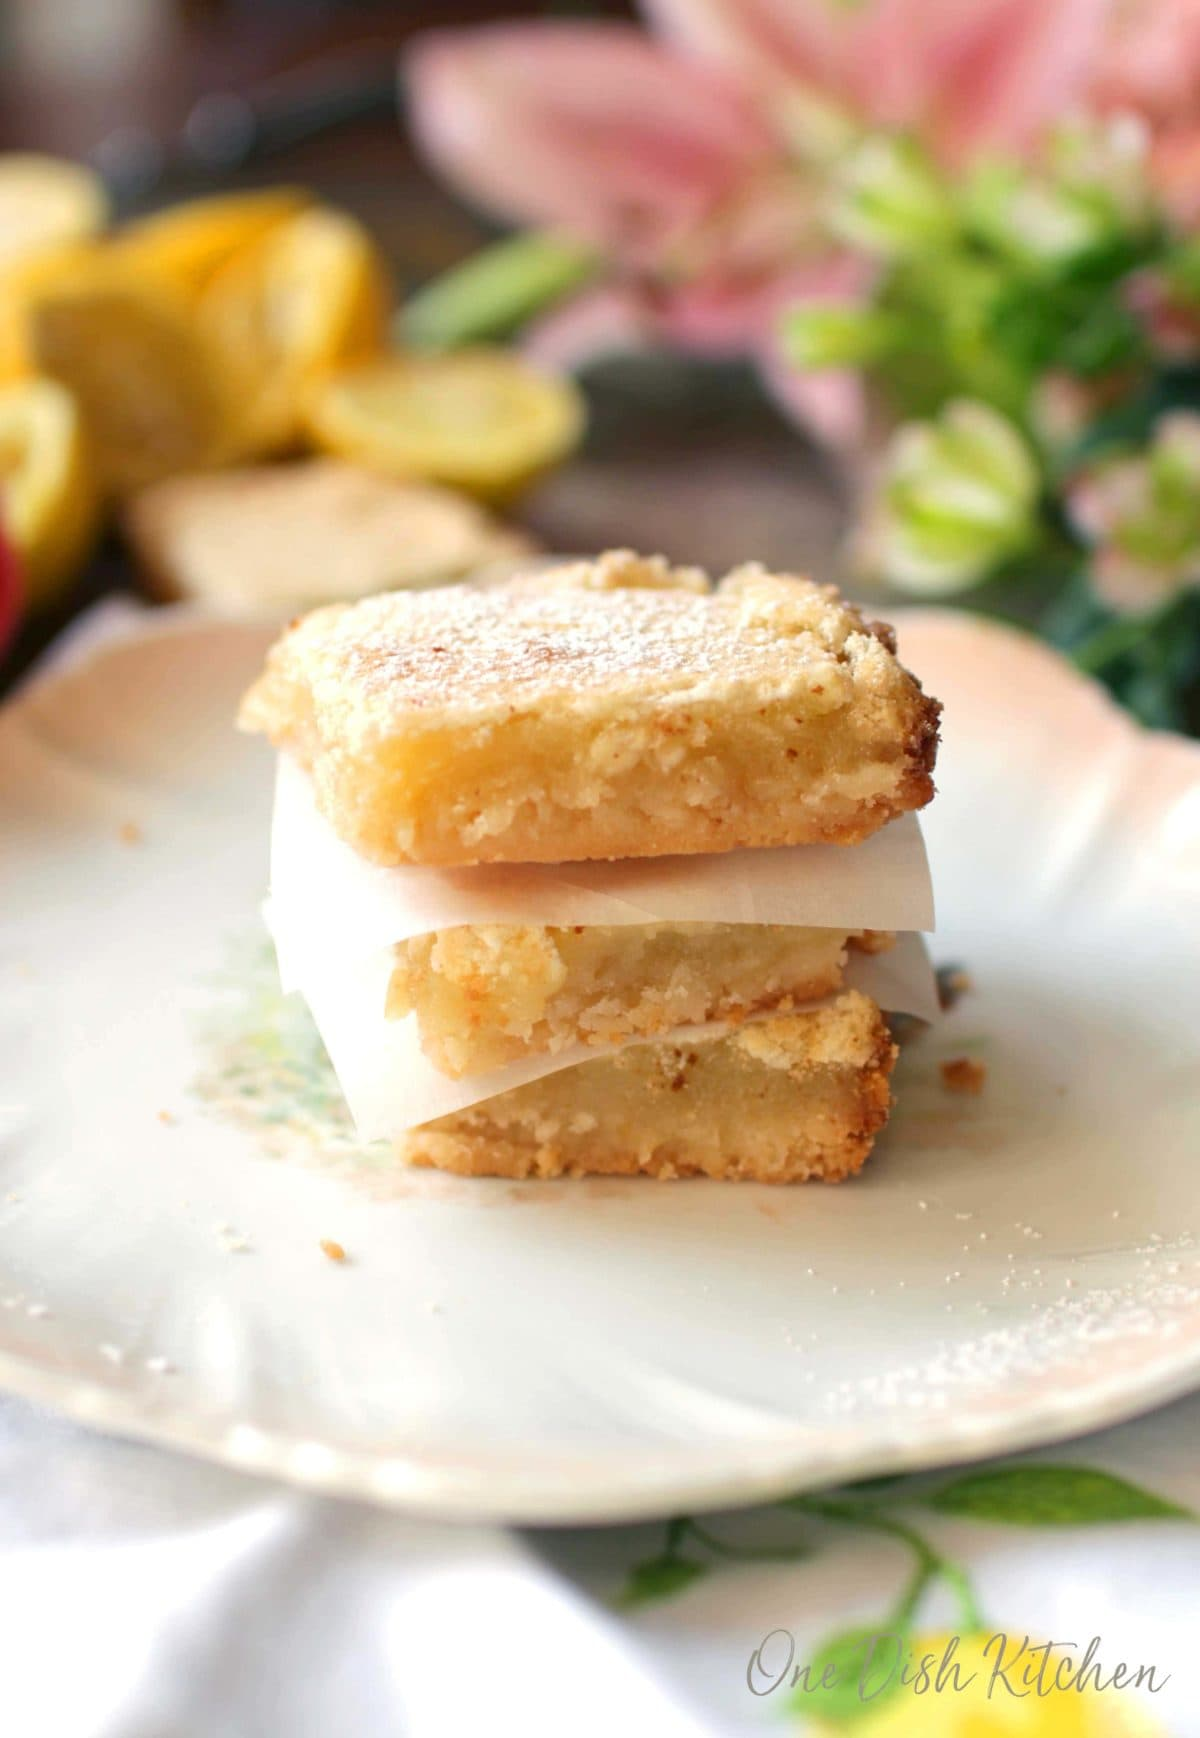 three lemon bars stacked on top of each other on a white plate next to lemon slices and flowers